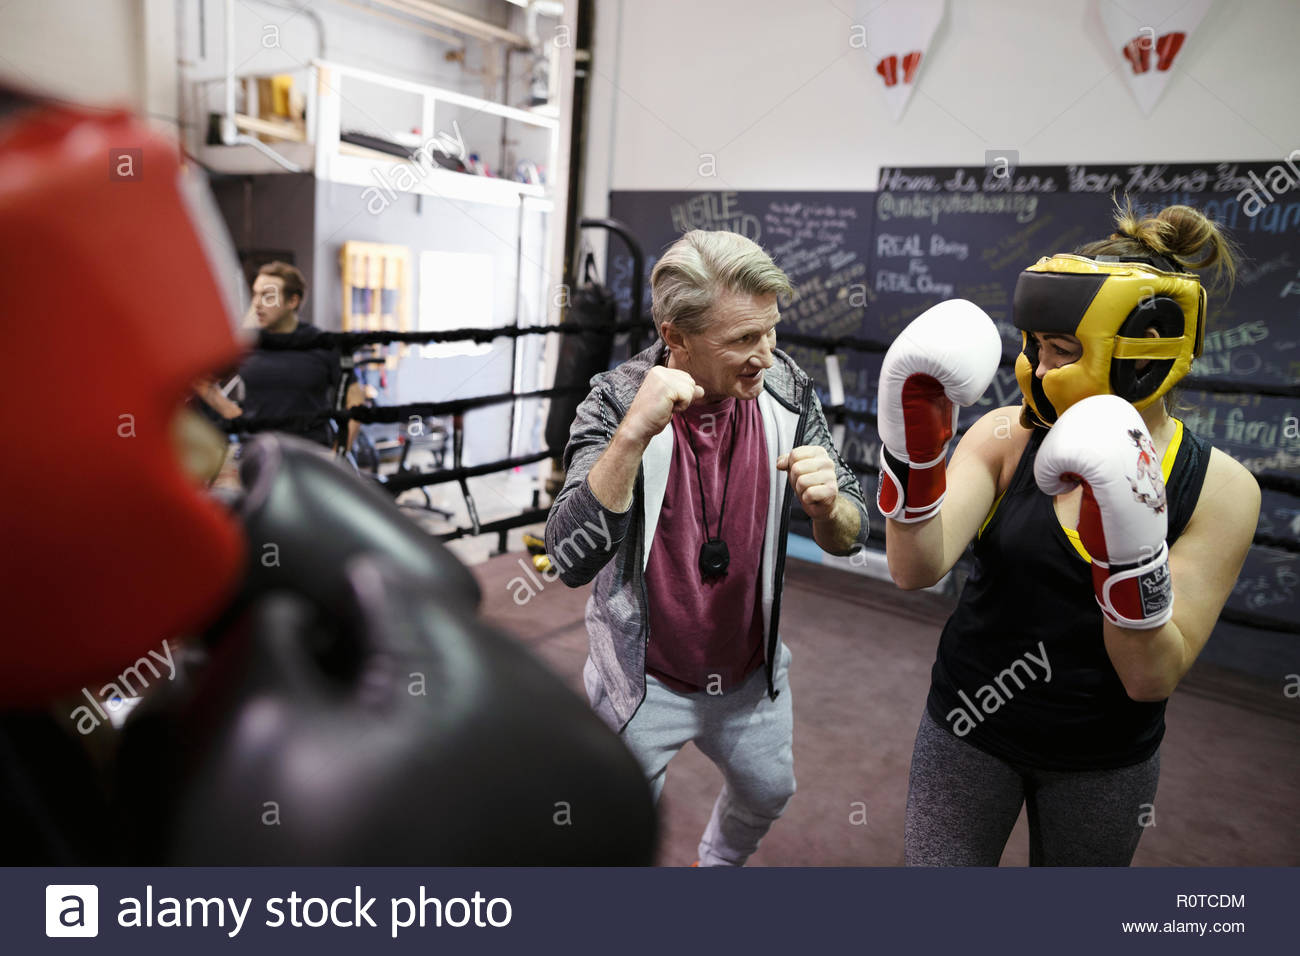 Trainer guiding female boxer training in boxing ring in gym - Stock Image